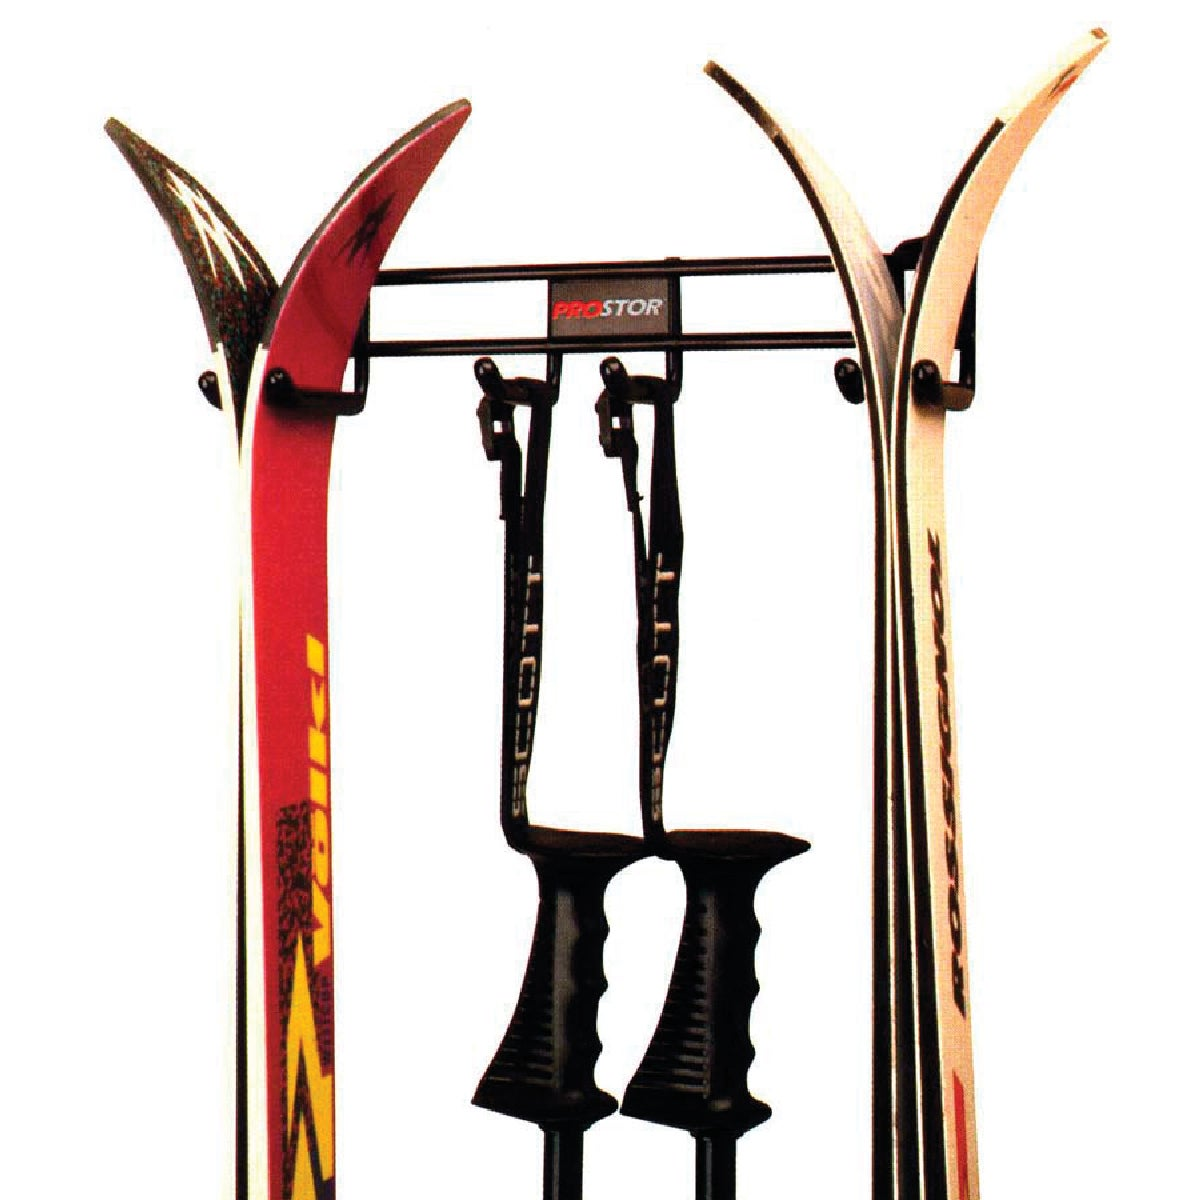 DOUBLE SKI/POLE RACK